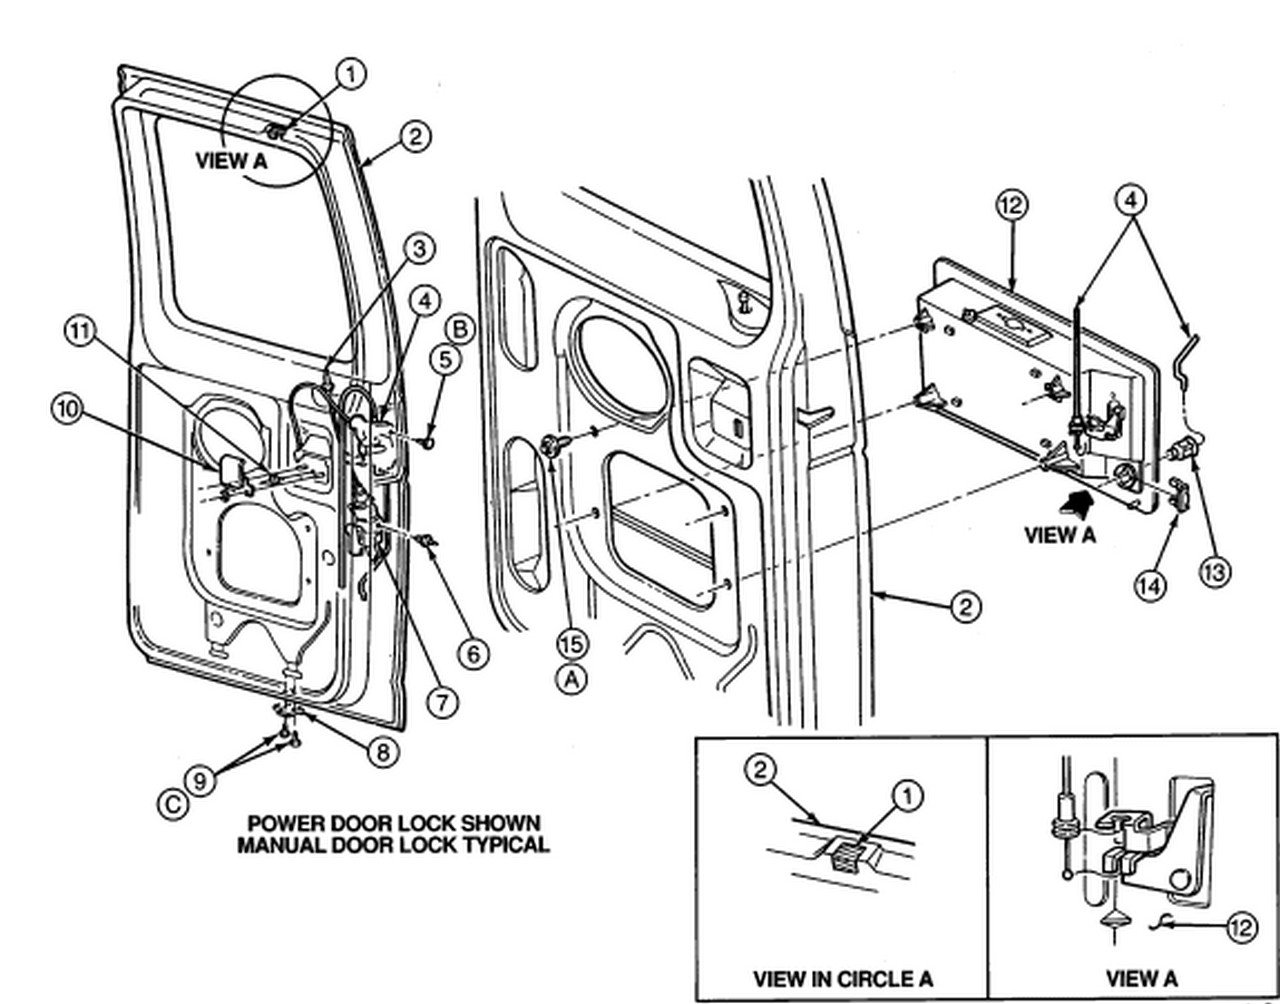 2001 Jeep Wrangler Wiring Diagram in addition 7omvg Gmc 1500 Trying Find Stereo Wiring Diagram furthermore 896280 Help Wiring Up Push Start Button And Ign Switch together with 2003 F150 Fuse Panel Diagram besides 64nrv Ford Mustang Gt Reinstalled Am Fm Casette. on 97 f350 wiring diagram